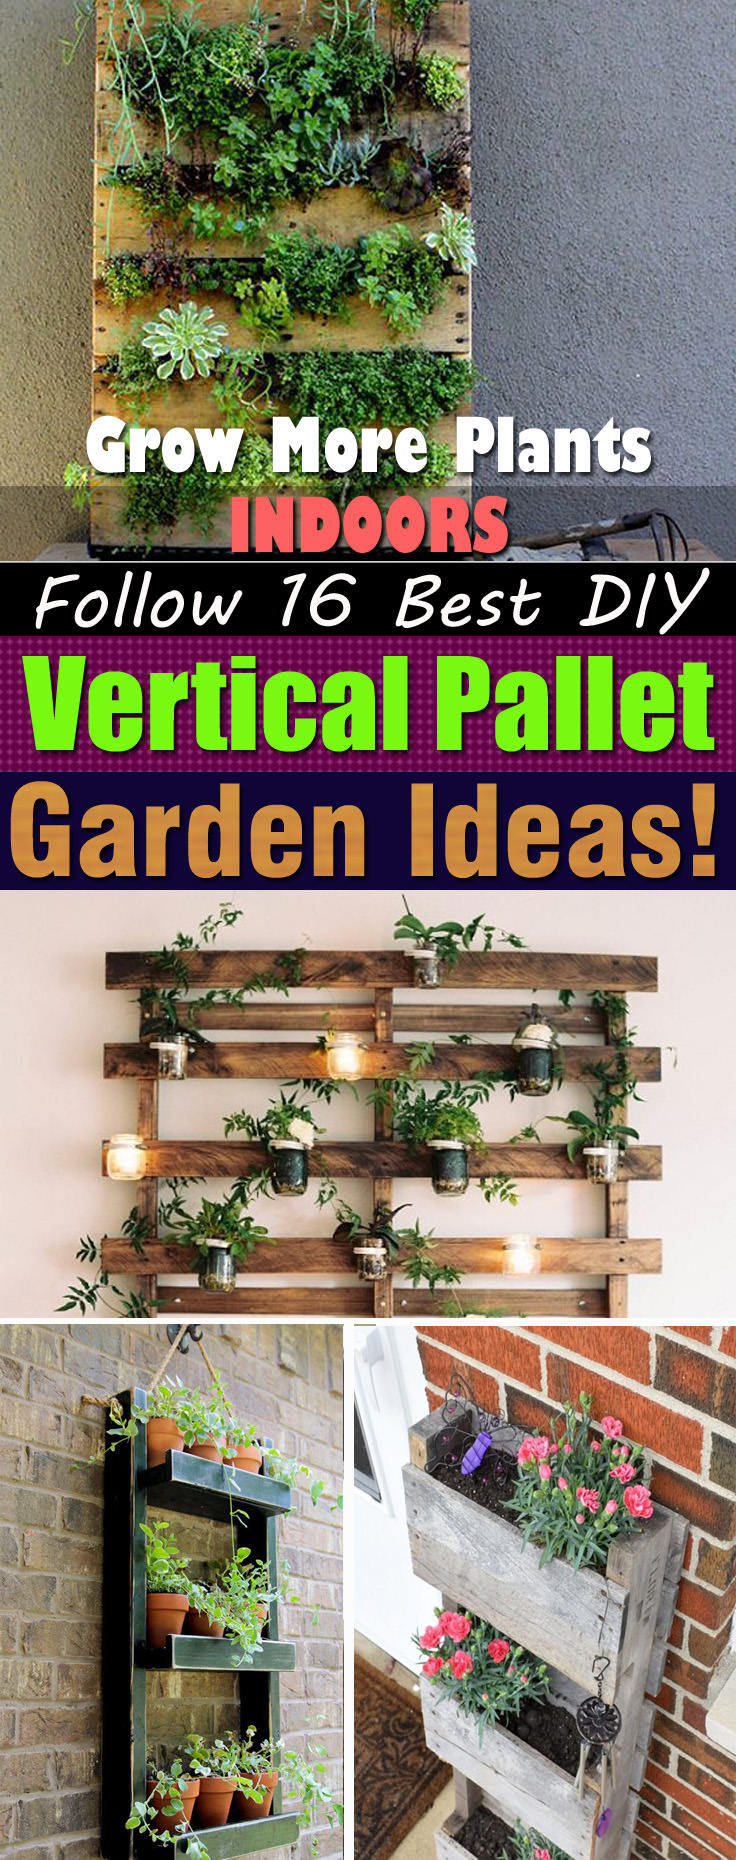 With These Vertical Indoor Pallet Garden Ideas Here, Not Only Youu0027ll Be Able